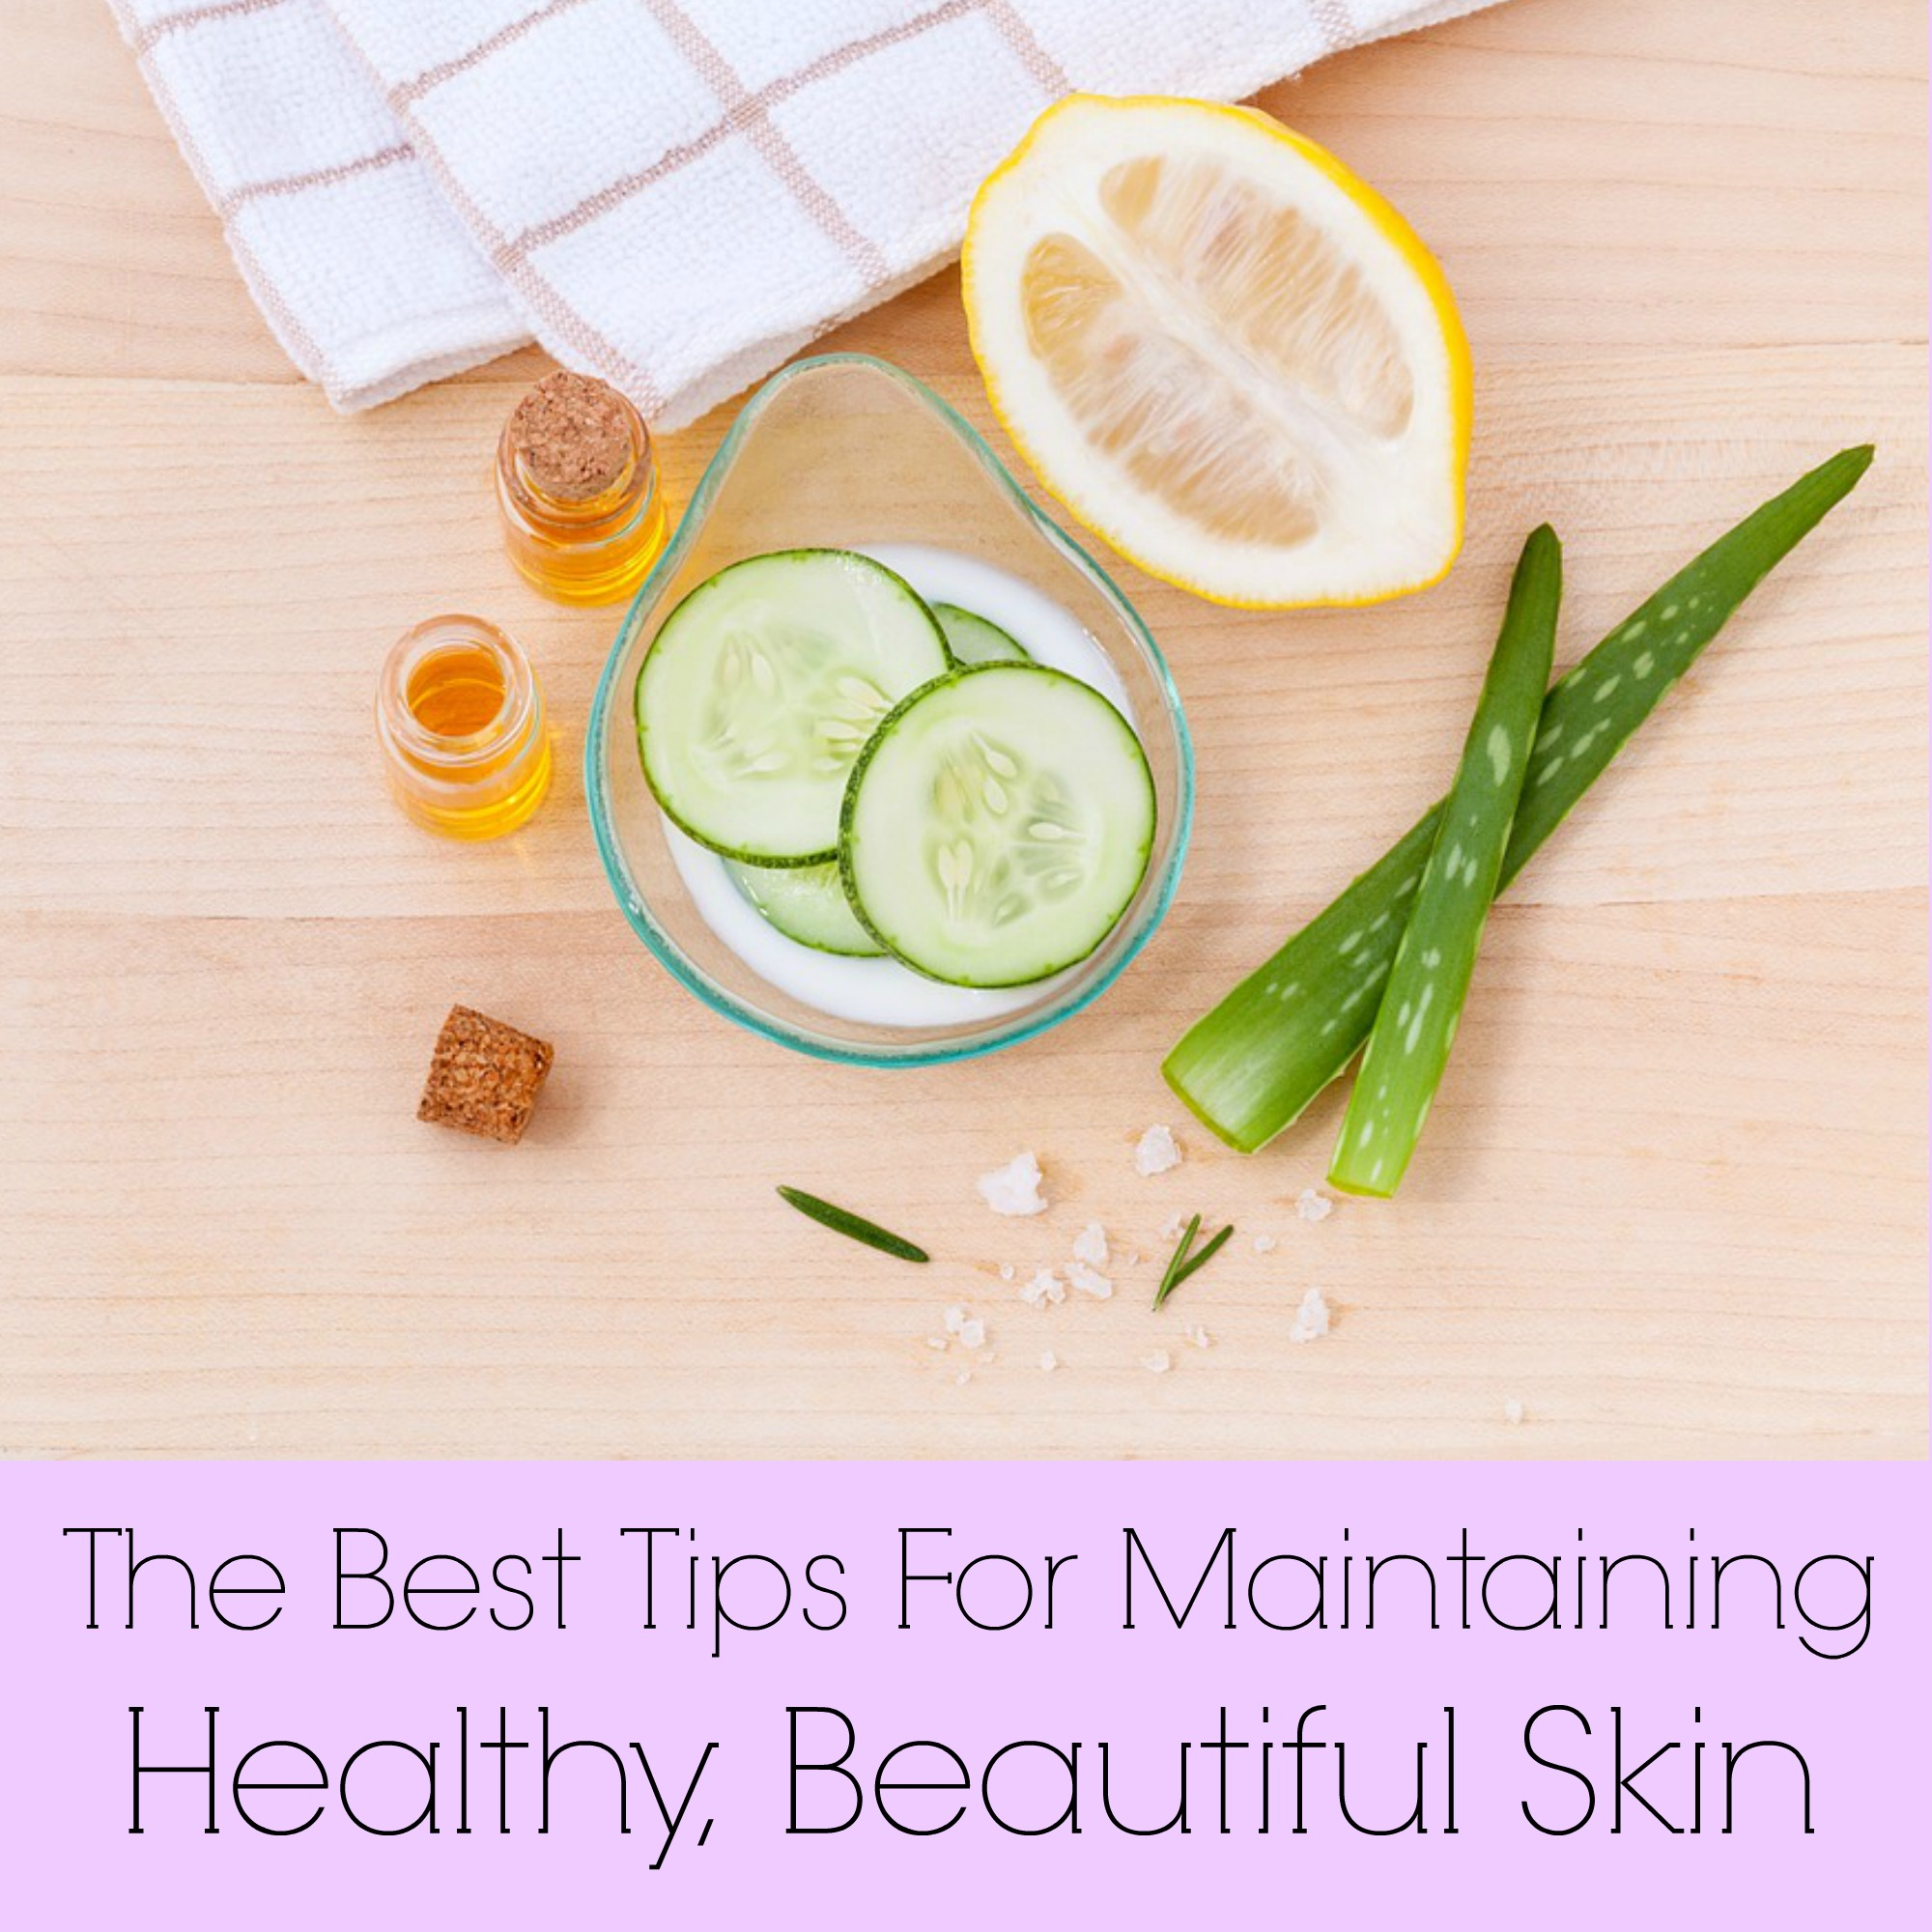 The Best Tips For Maintaining Healthy, Beautiful Skin